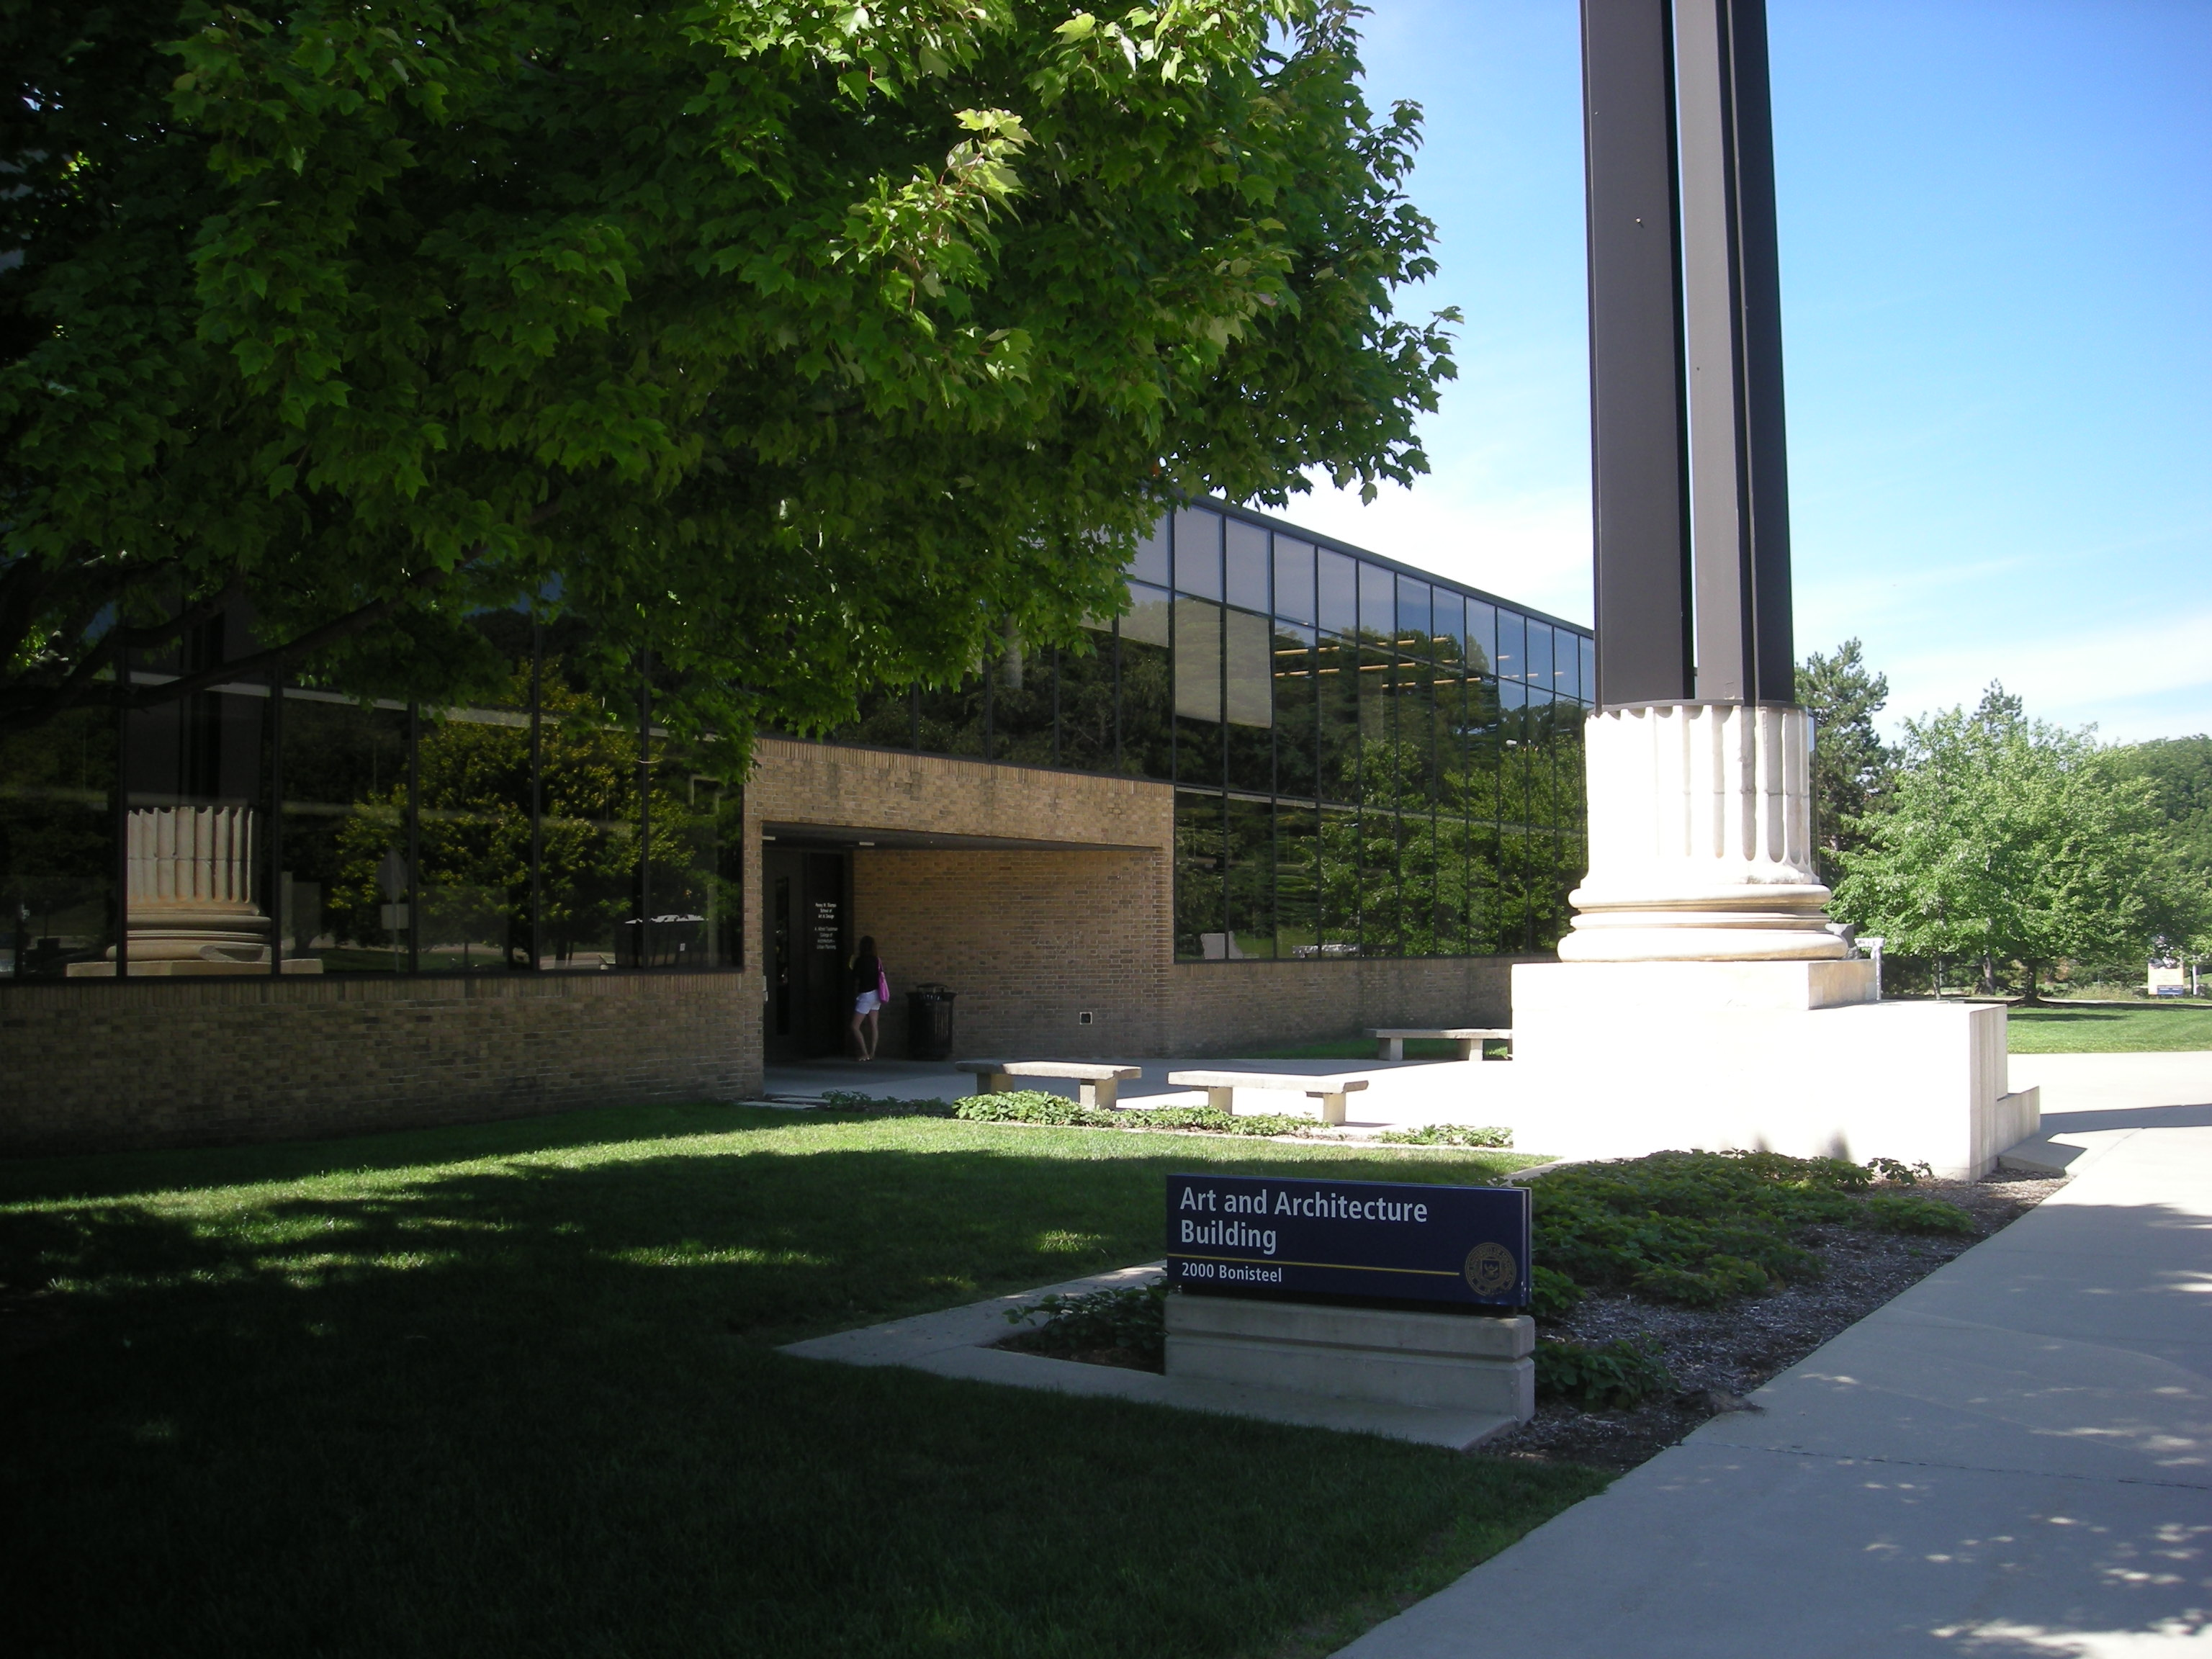 File:University Of Michigan August 2013 001 (Art And Architecture  Building)